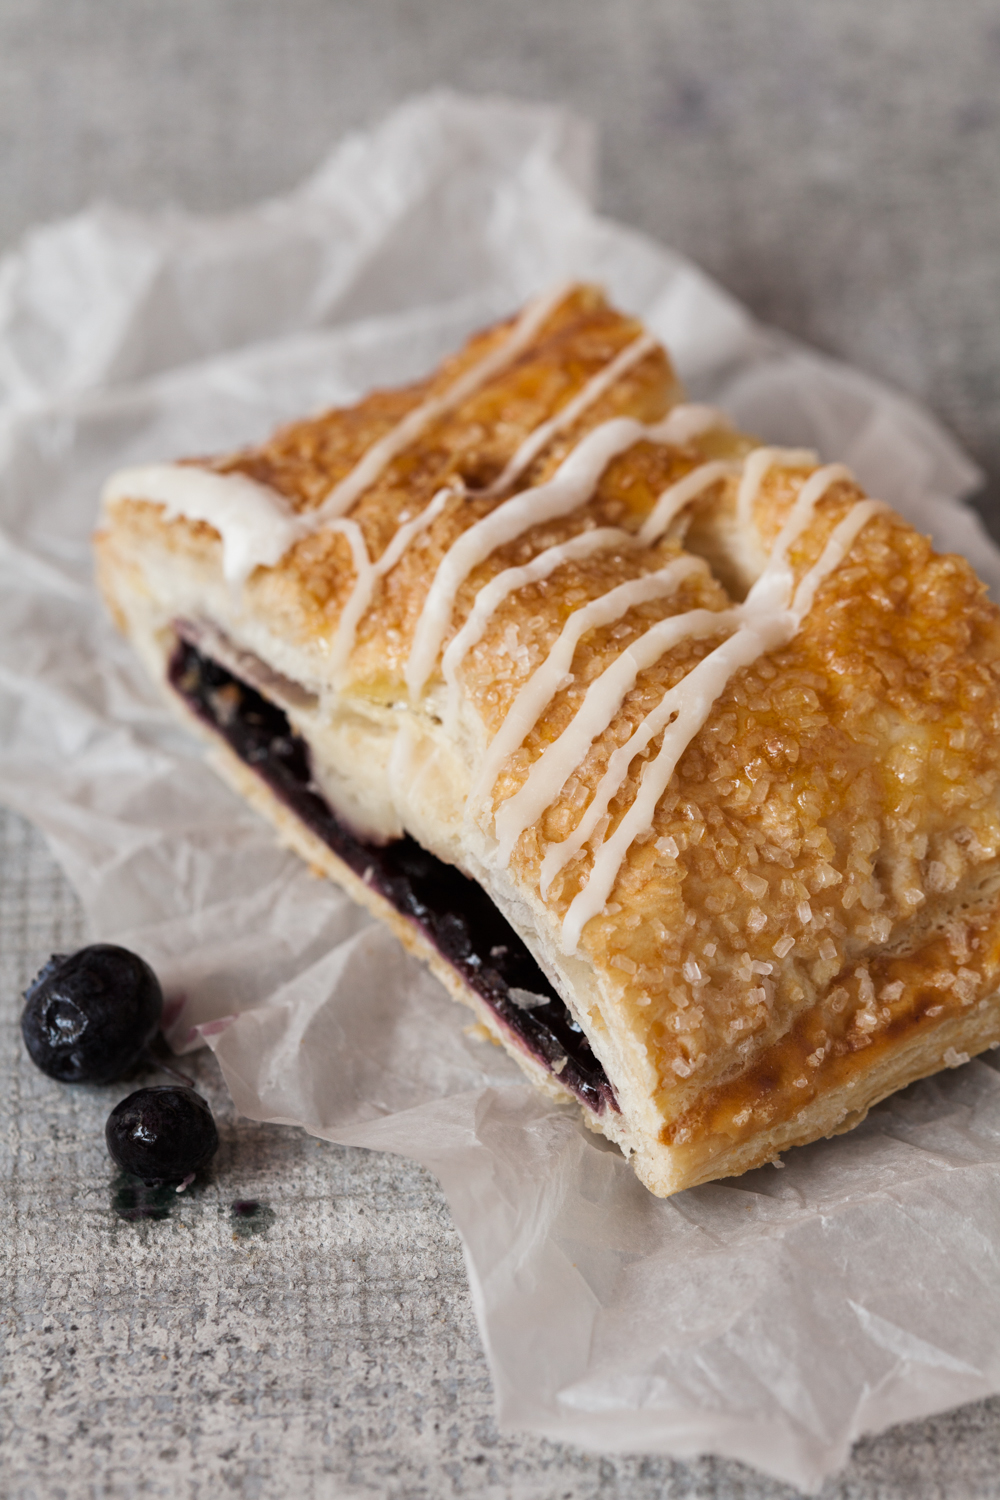 Blueberry Cheese Strudel